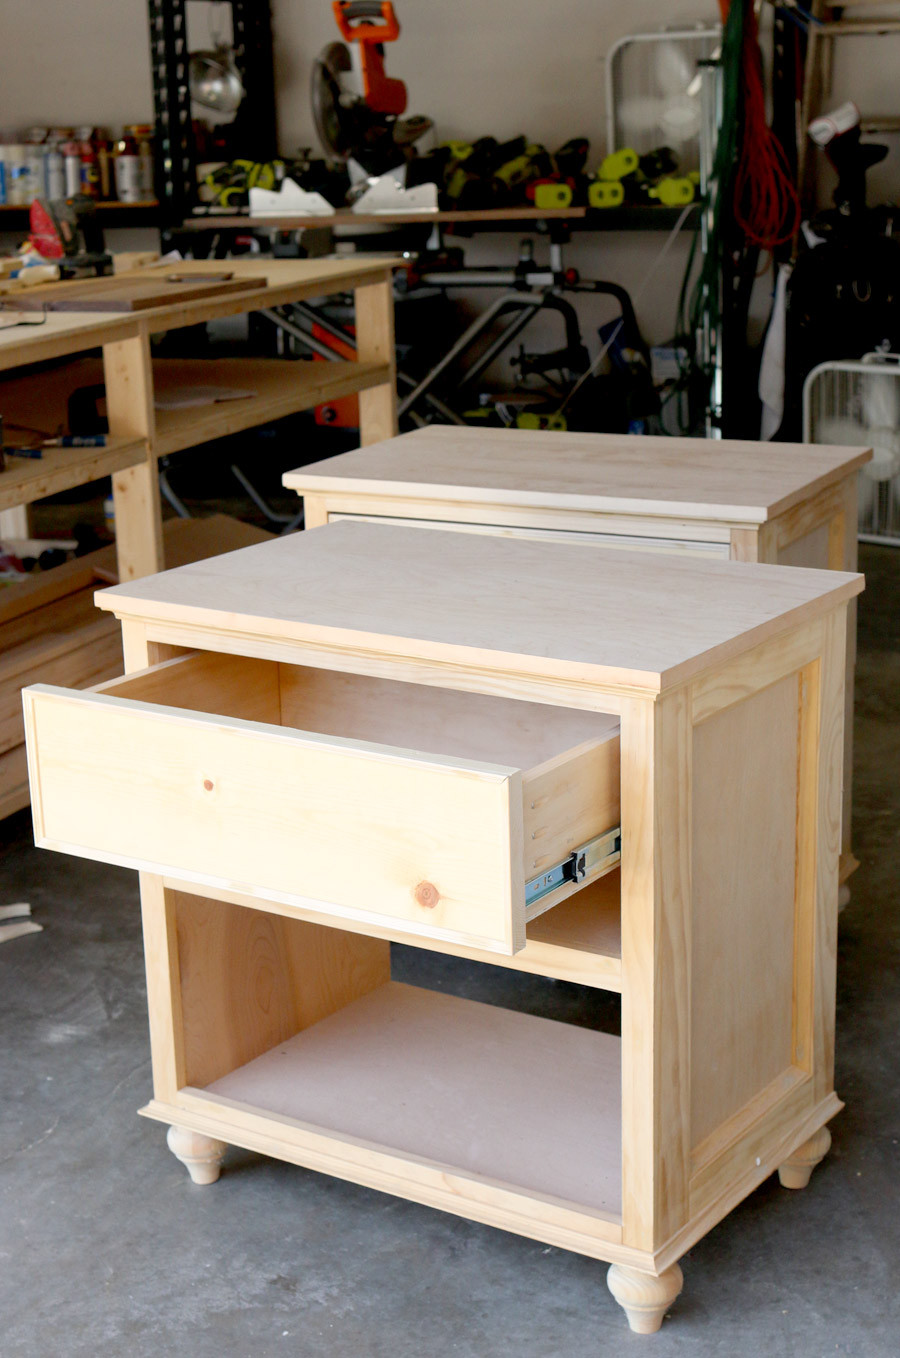 Best ideas about DIY Bed Table . Save or Pin How To Build DIY Nightstand Bedside Tables Now.